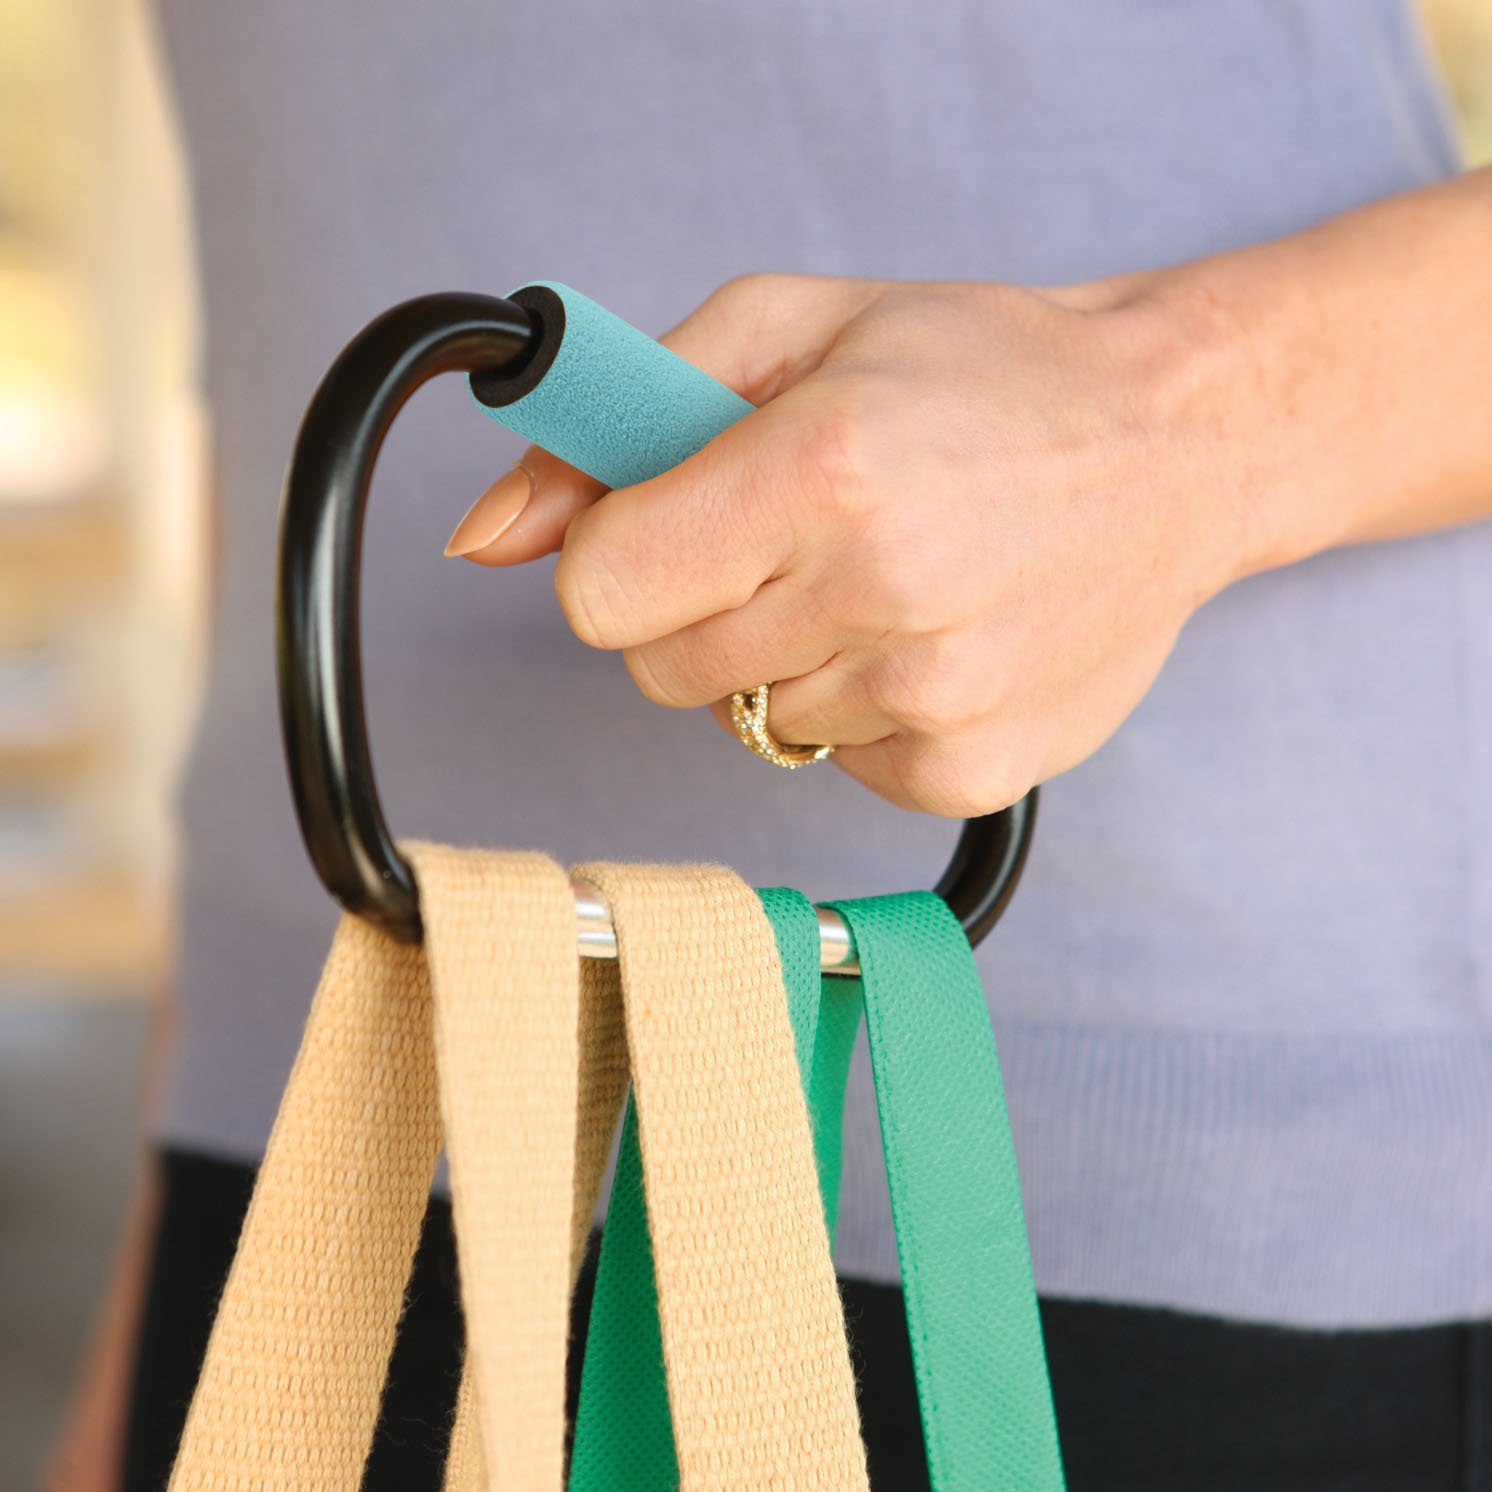 Stroller Utility Hook (Assorted Colors) by Carter's (Image #2)